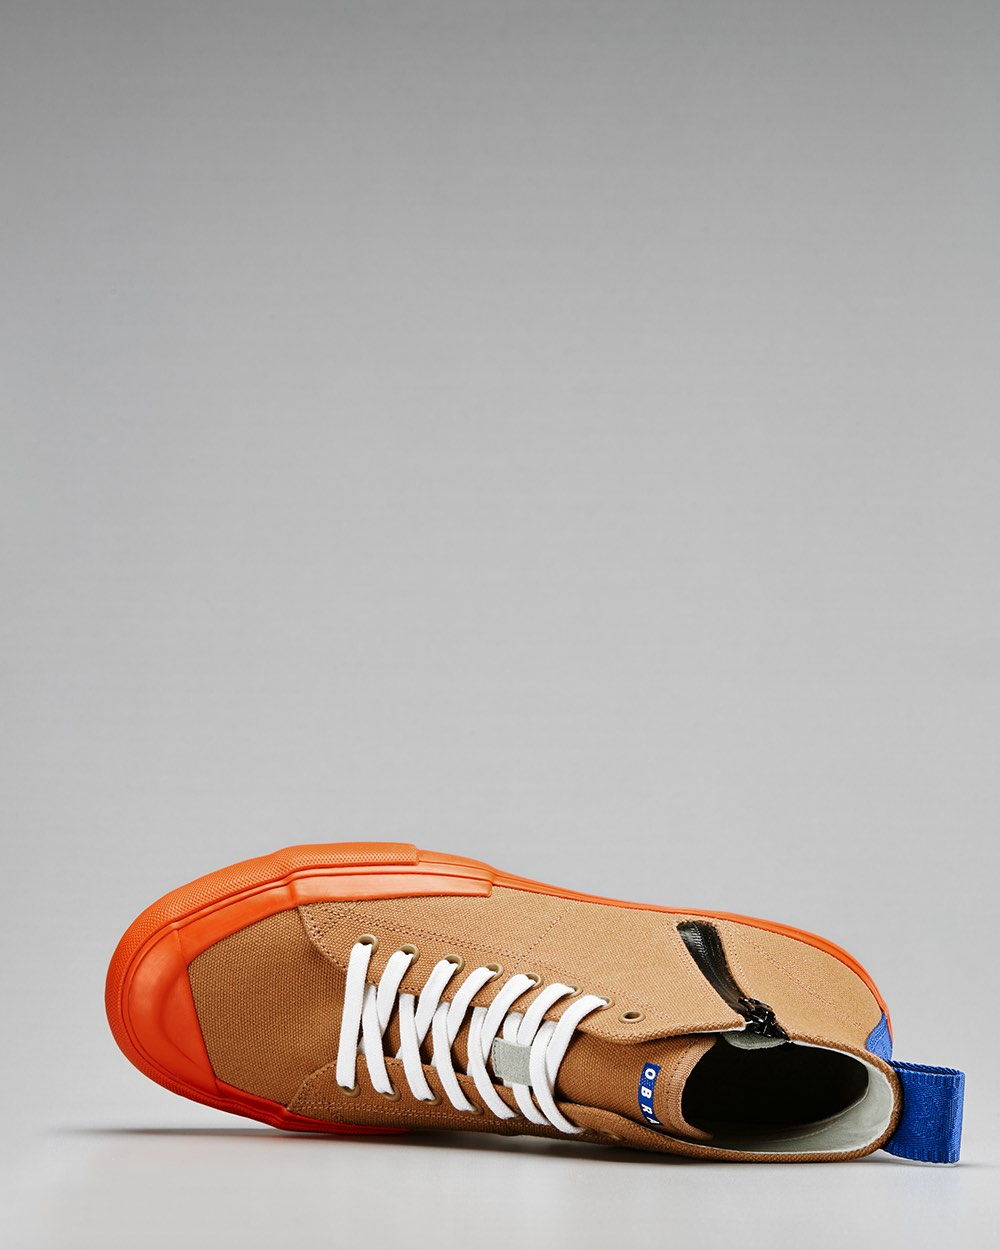 TERRA CANVAS HIGH FULL CAP<br />Brown Sugar/Utility Orange/OBRA Blue